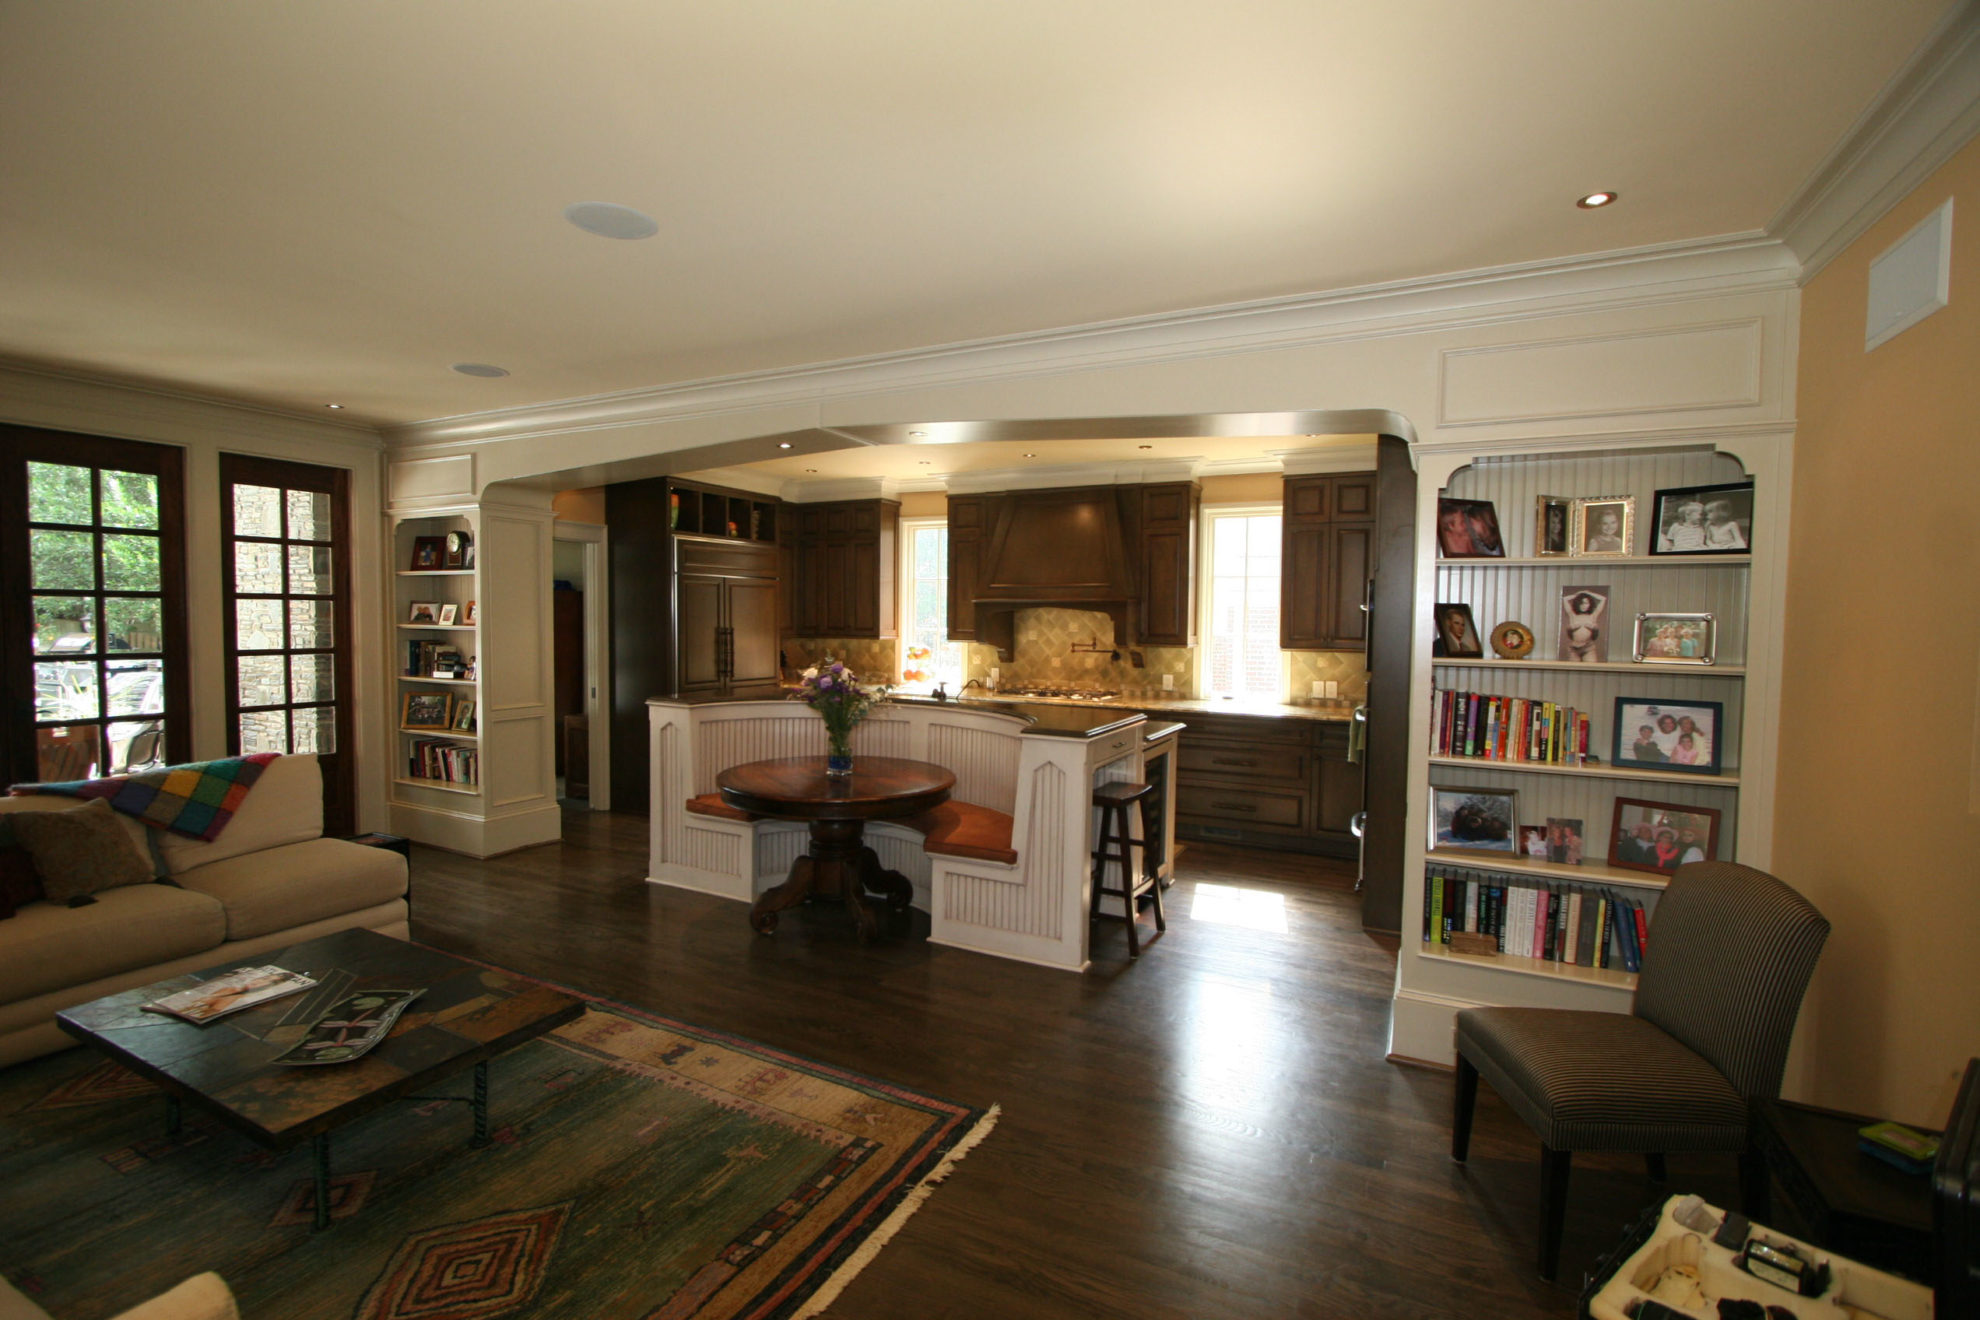 http://creativecabinetryinc.com/wp-content/uploads/2019/01/c-Living-room-bookcase-long-archway.-e1548865664252.jpg